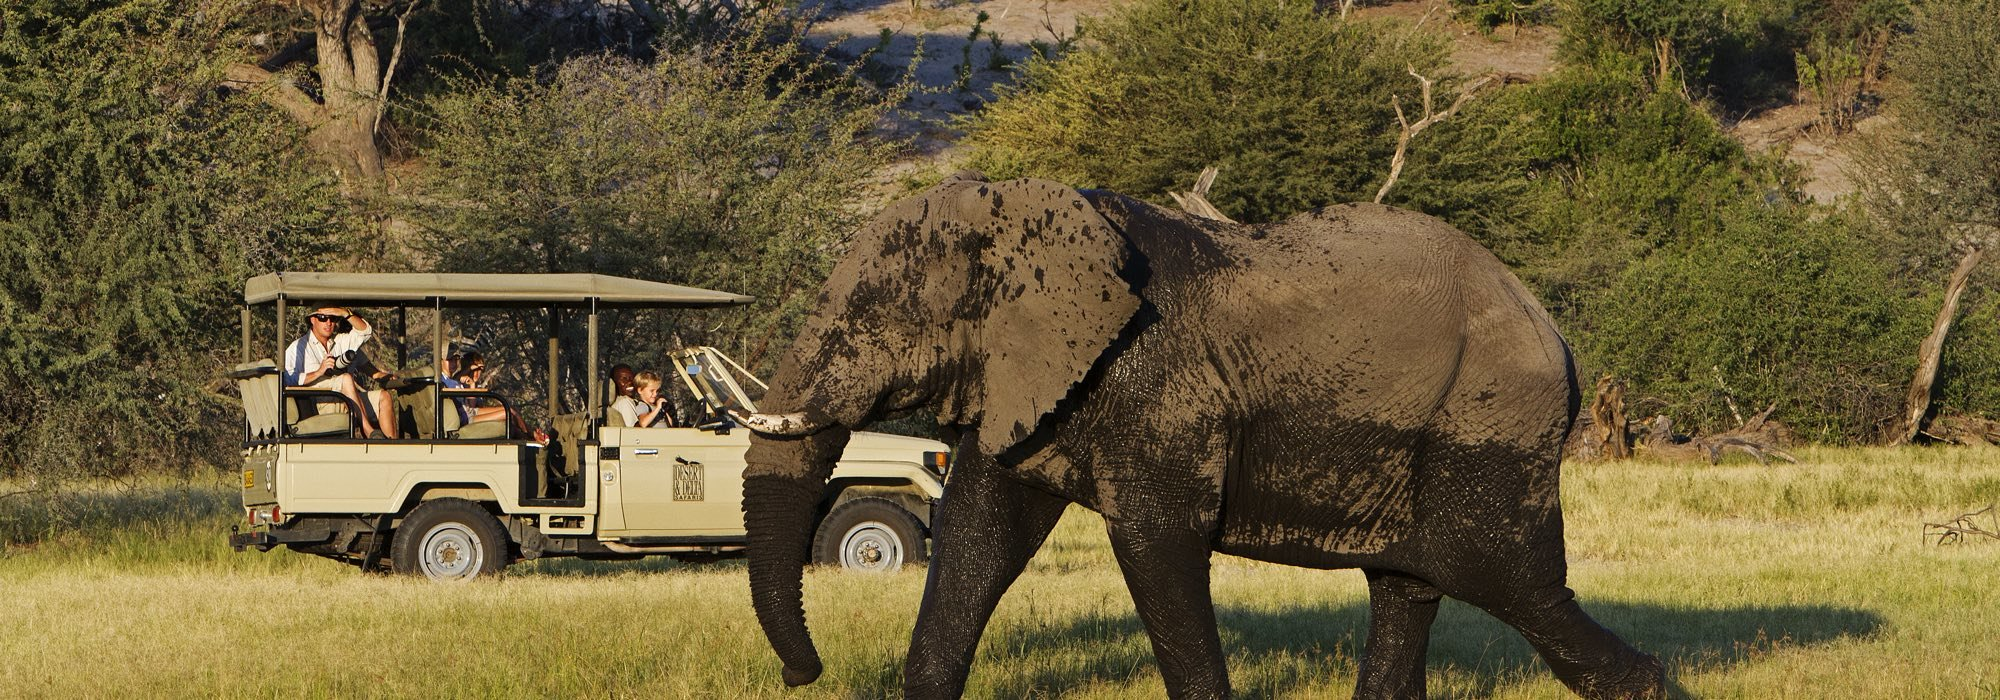 Elephant on a game drive in Botswana